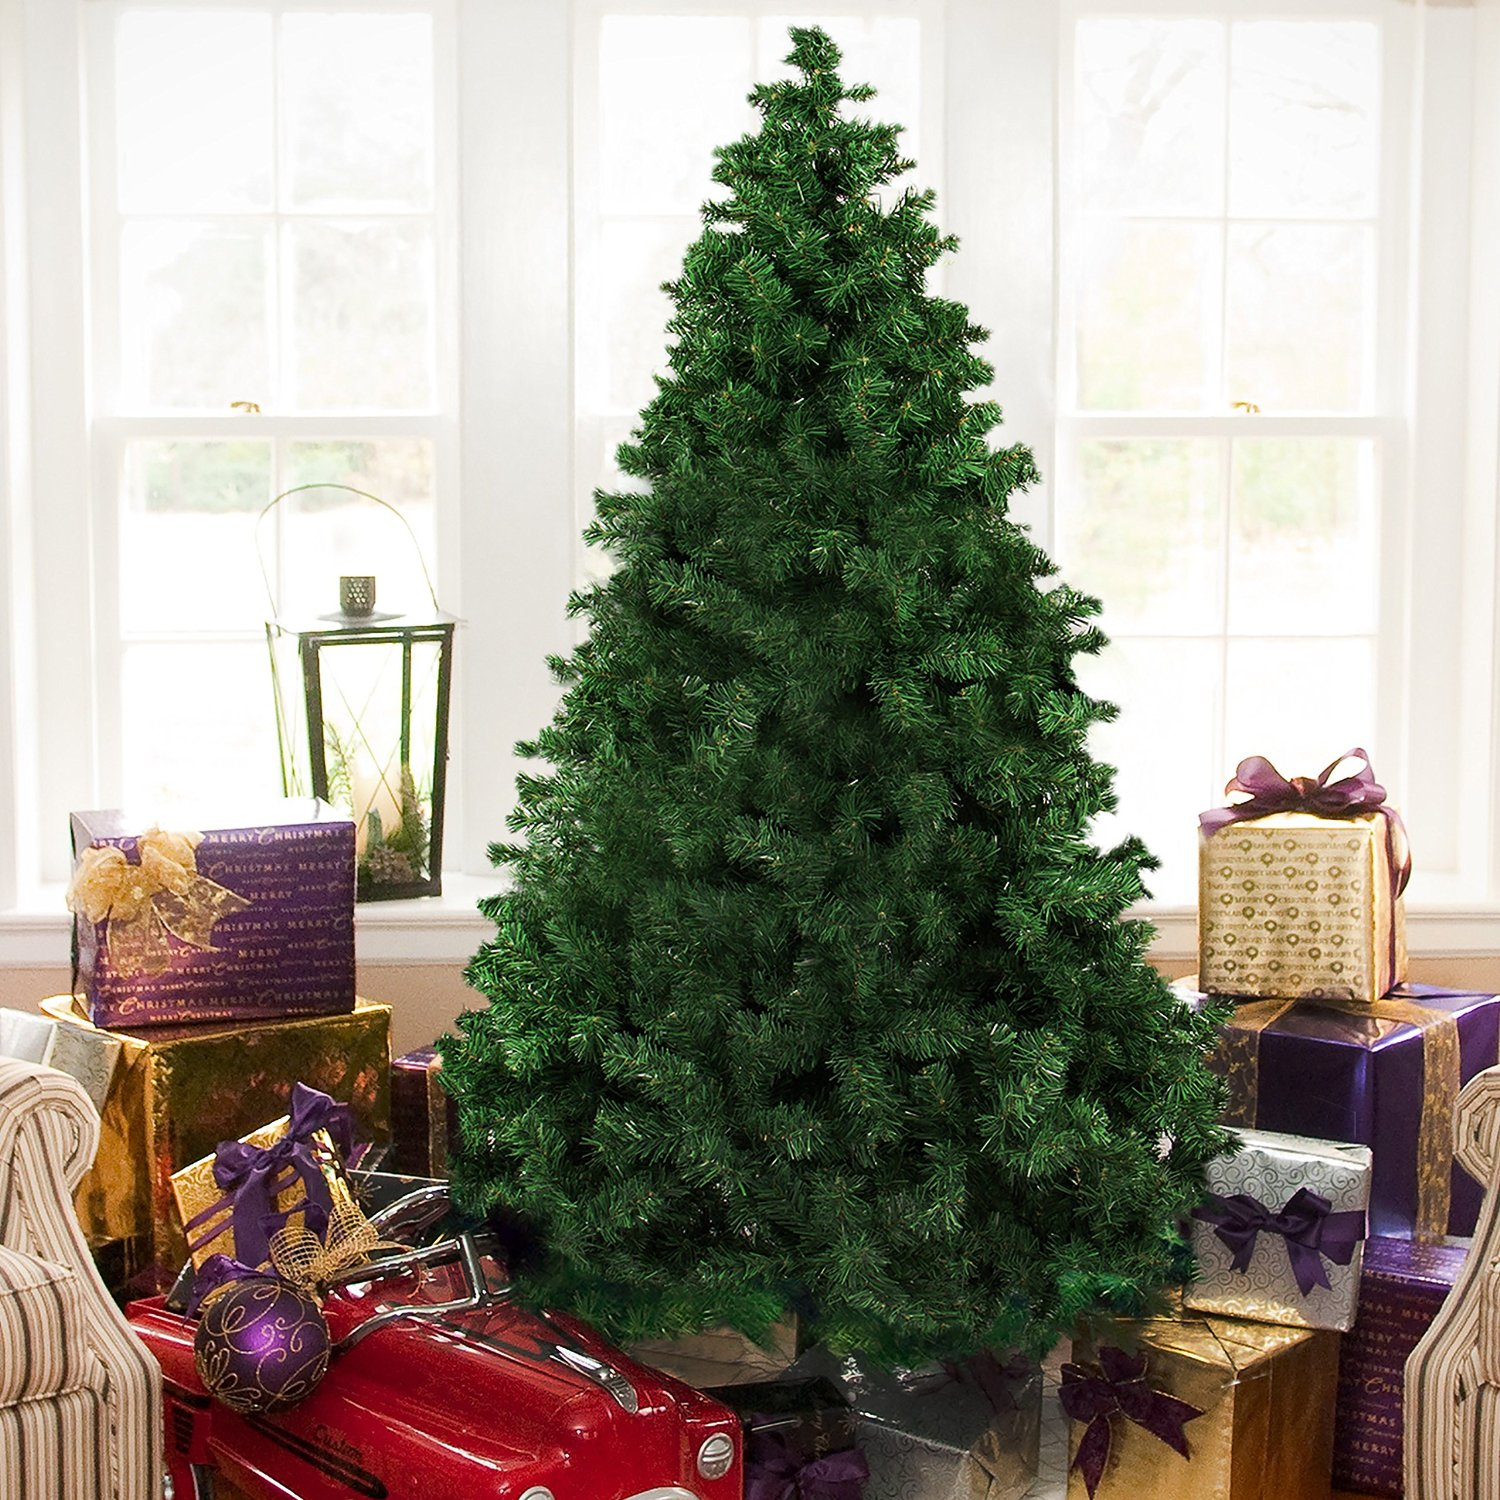 Where To Buy A Nice Artificial Christmas Tree: 14 Best Artificial Christmas Trees 2017